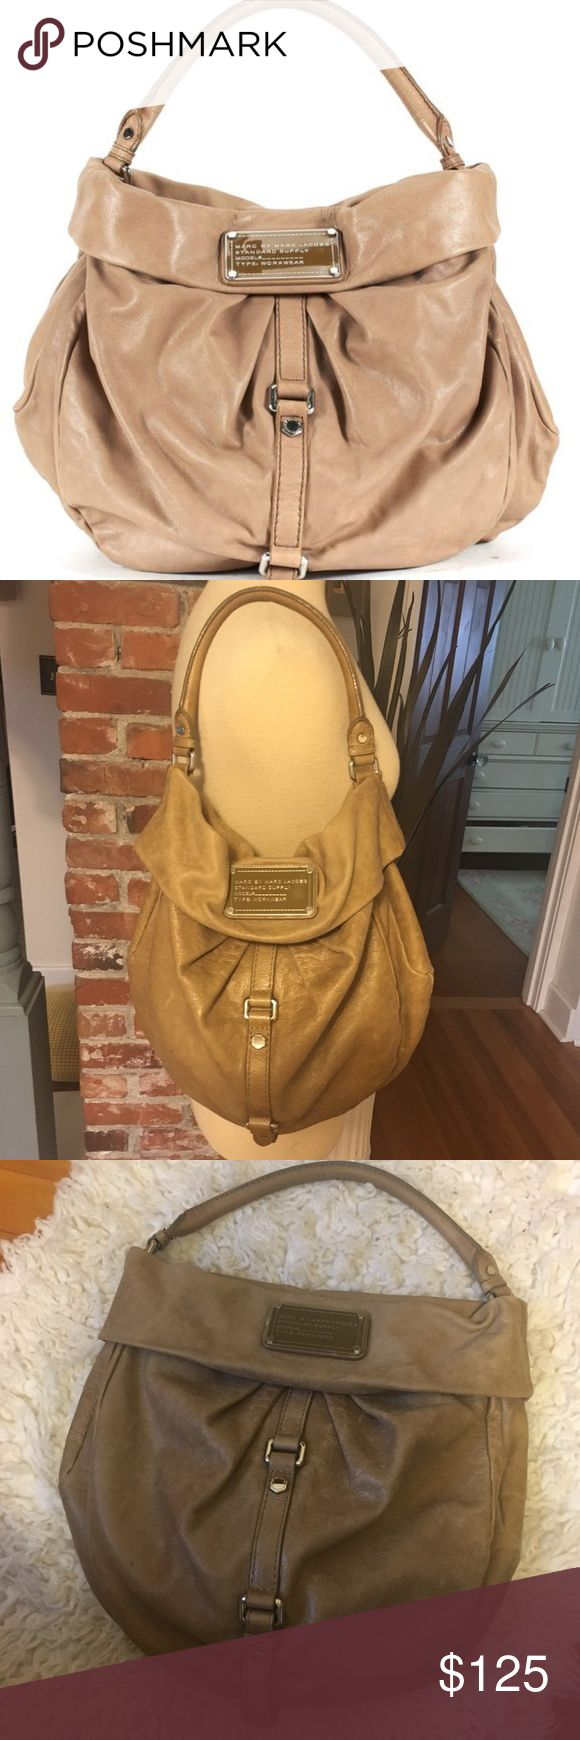 """Marc by Marc Jacobs Tan Leather Hobo Shoulder Bag Marc by Marc Jacobs tan hobo shoulder bag. Made of soft distressed leather and features silver hardware detail. A few minor marks but overall in excellent condition. 11"""" length, 14"""" height, 6"""" depth HANDLE DROP: 9"""" Marc by Marc Jacobs Bags Shoulder Bags"""